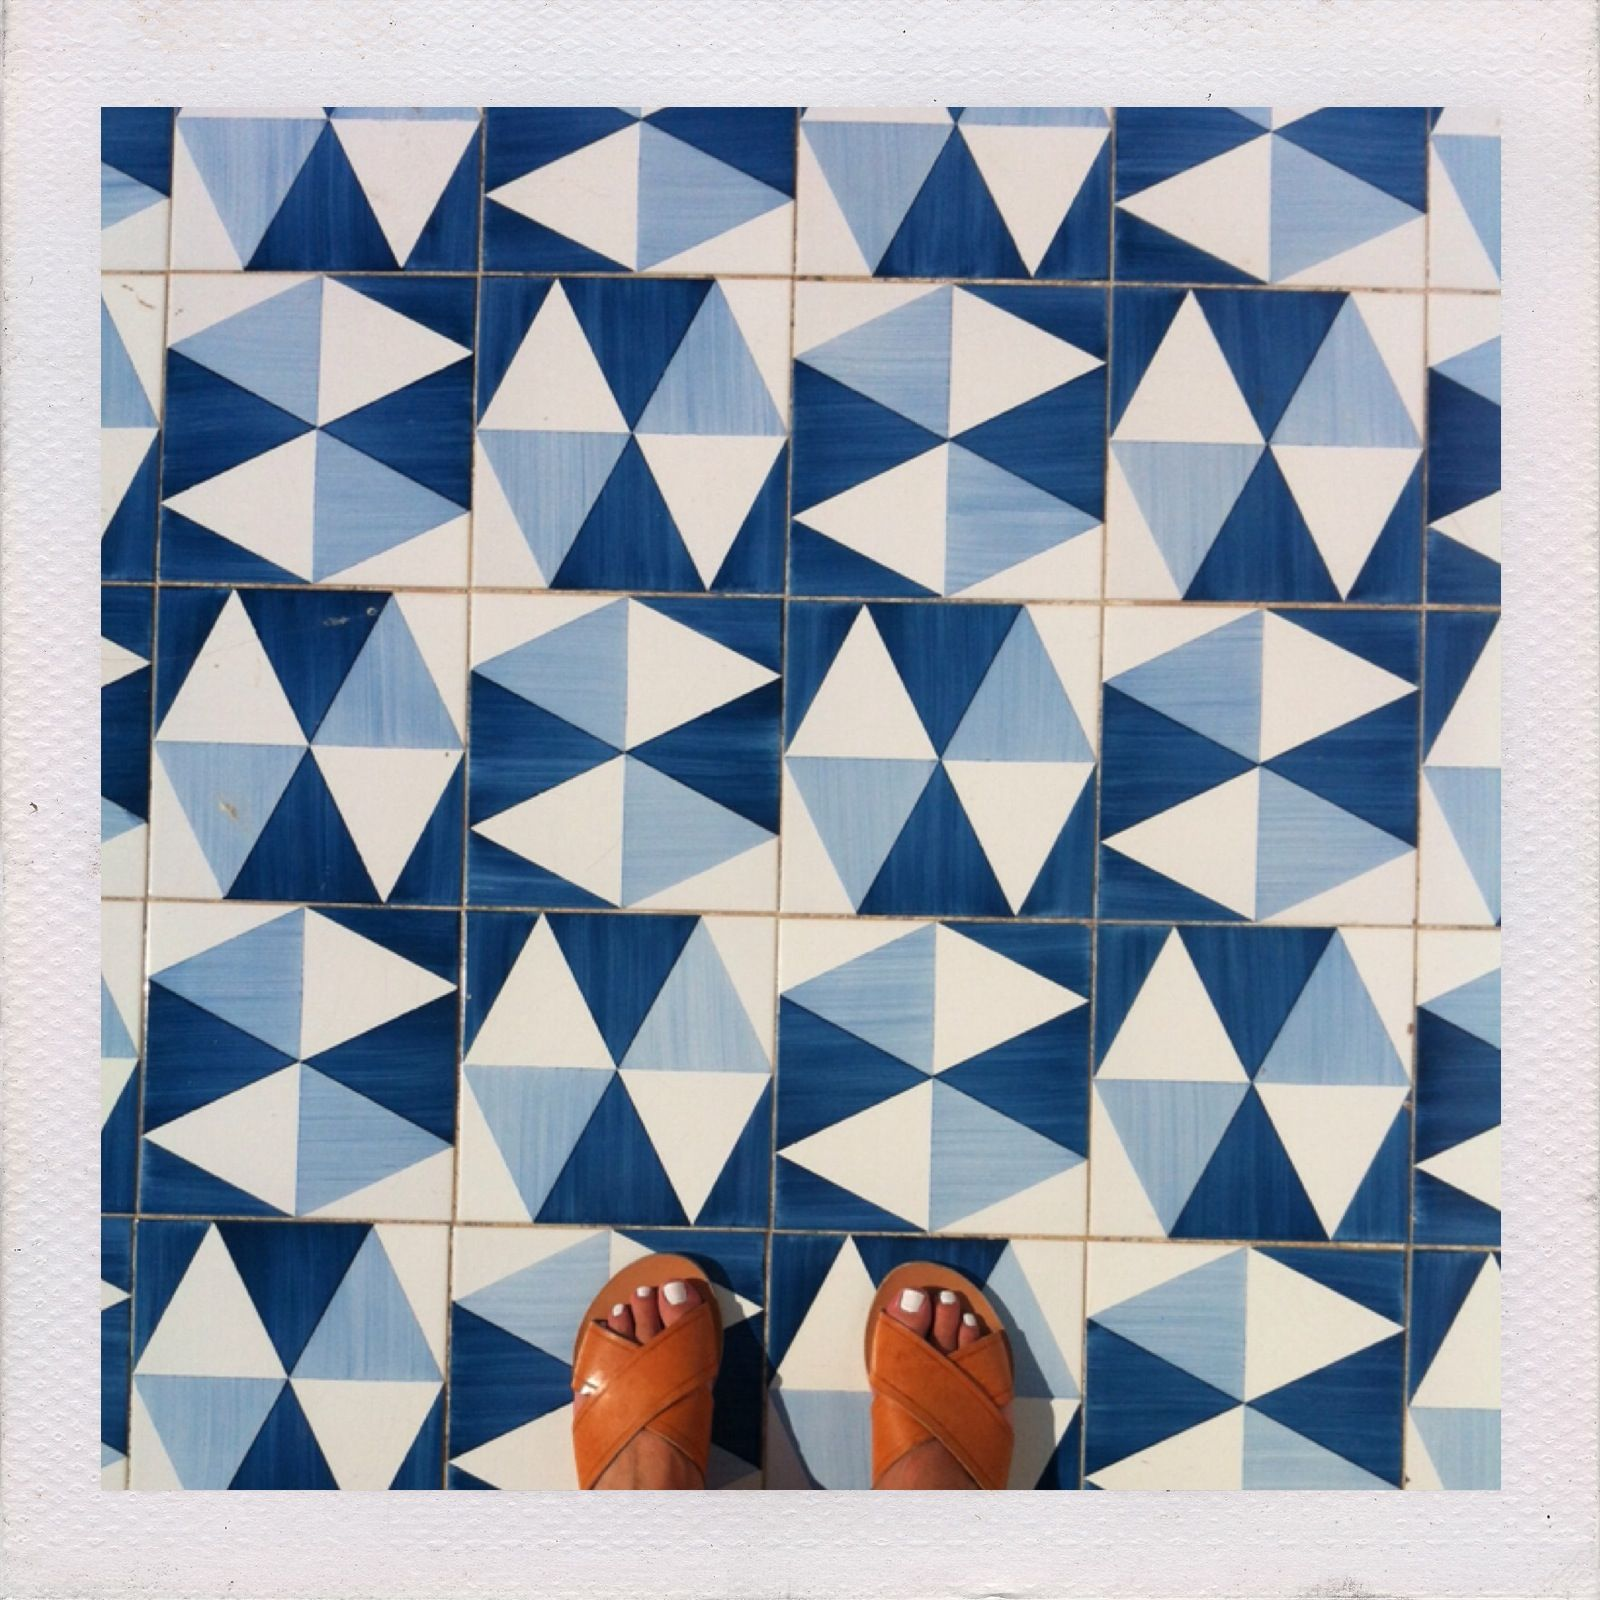 Ancient greek sandals and tiles by gio ponti at parco dei - Piastrelle gio ponti ...